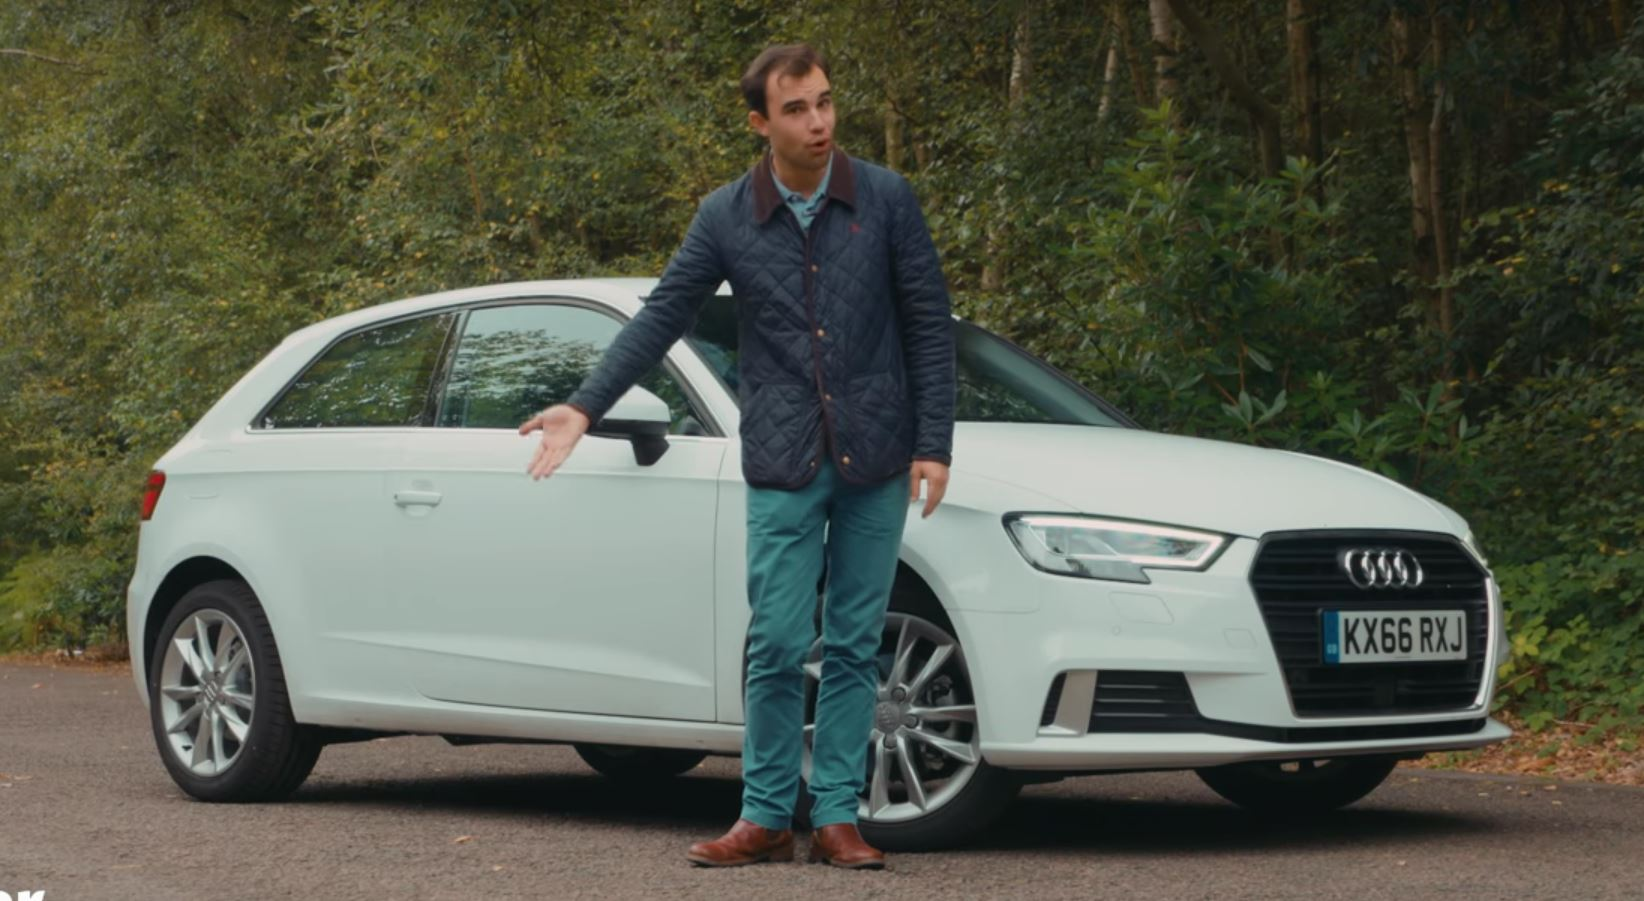 Uk Review Says 2017 Audi A3 With 1 Liter Engine Is Lighter And More Responsive